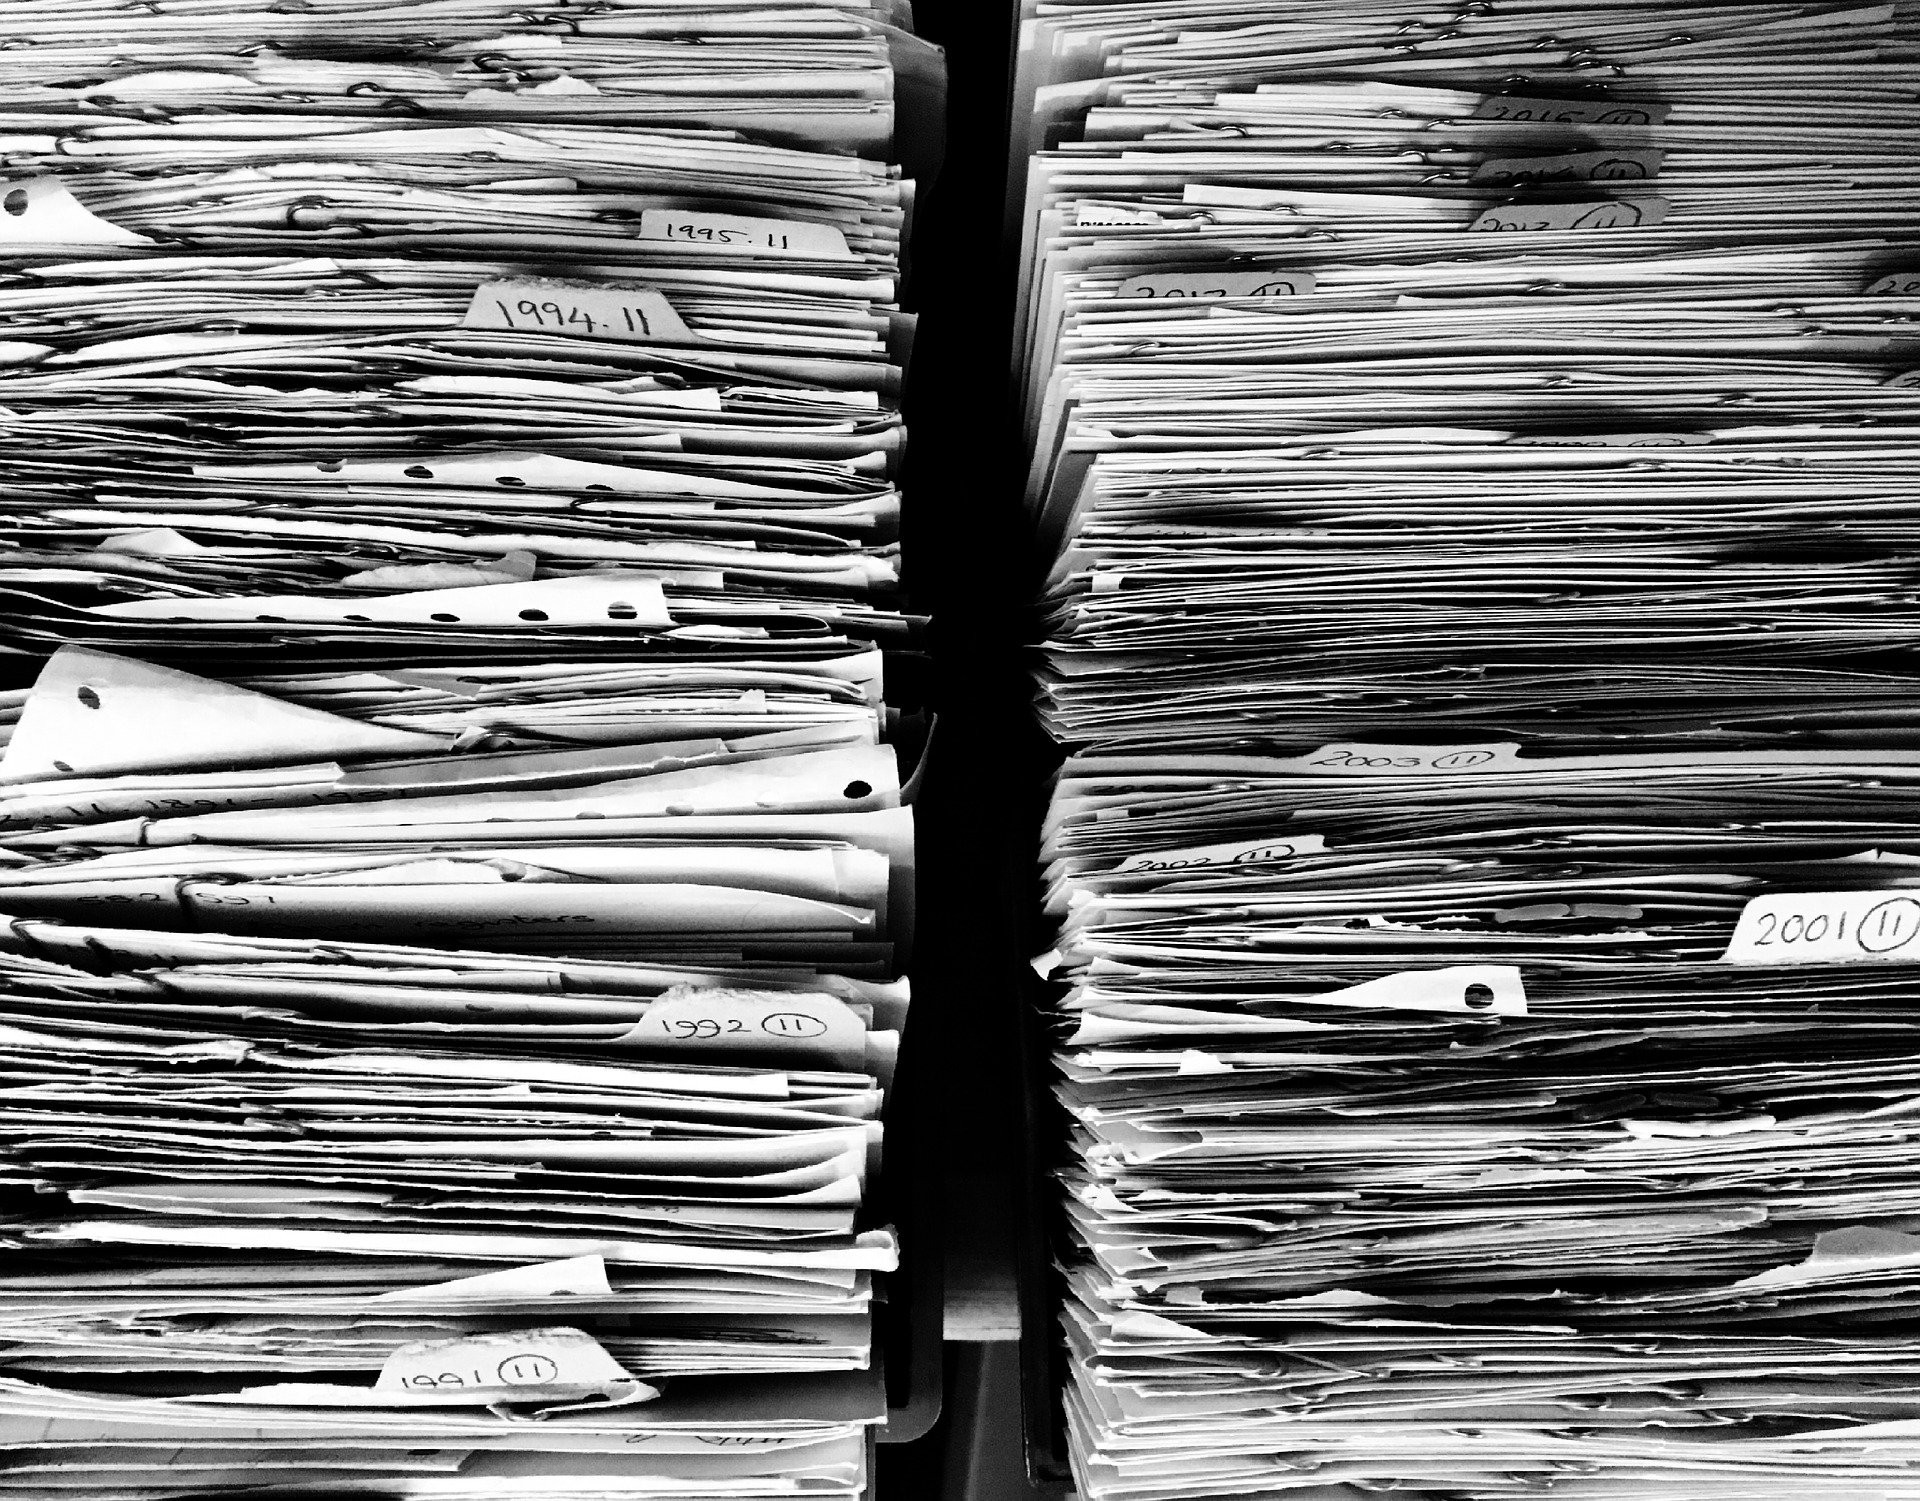 Two very large stacks of paper. Image by Ag Ku from Pixabay